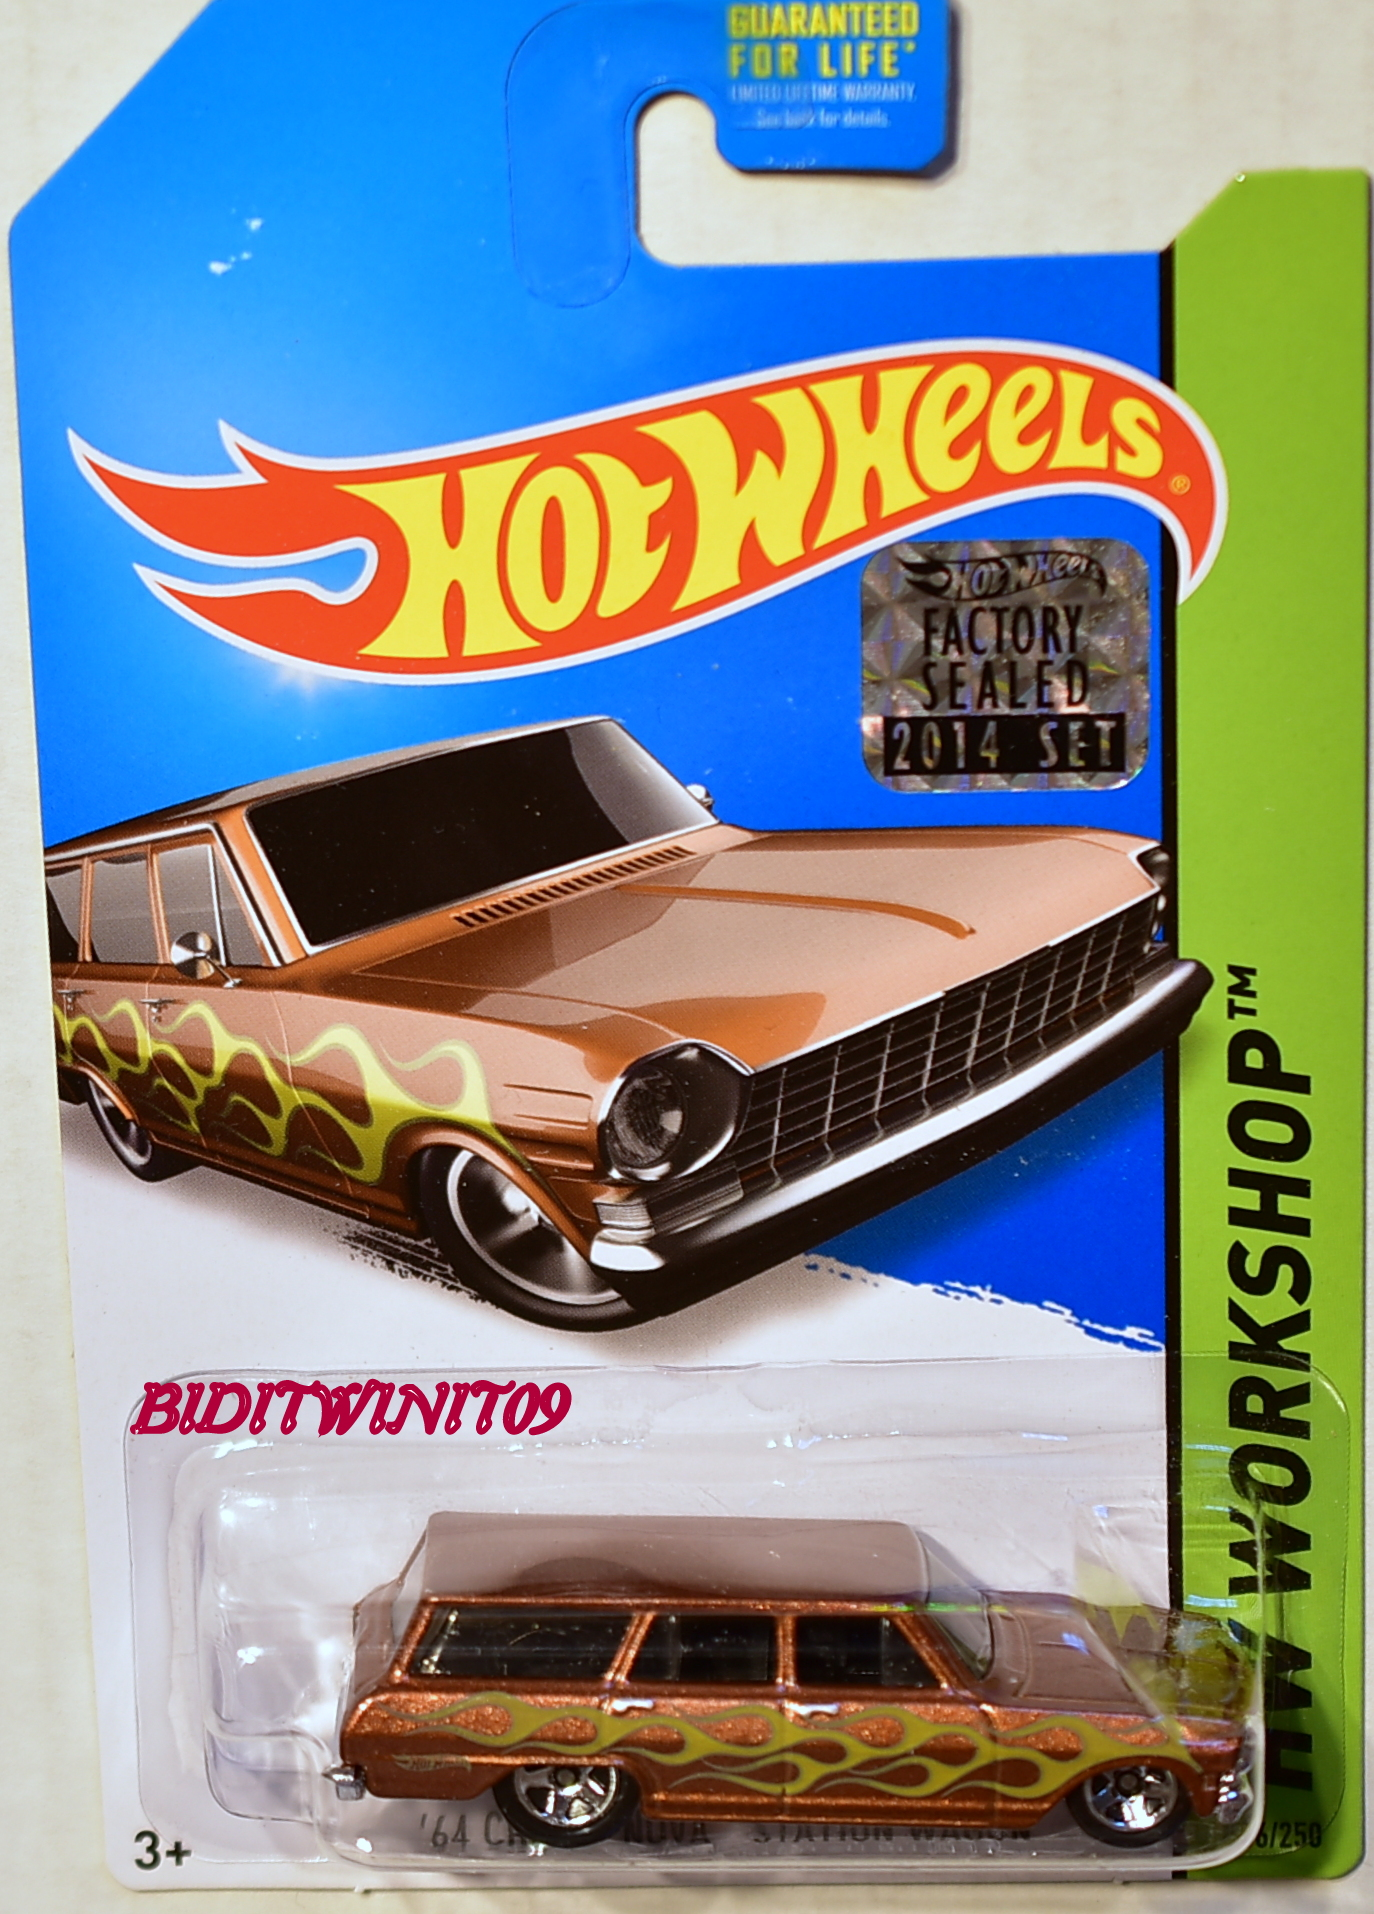 HOT WHEELS 2014 HW WORKSHOP '64 CHEVY NOVA STATION WAGON FACTORY SEALED